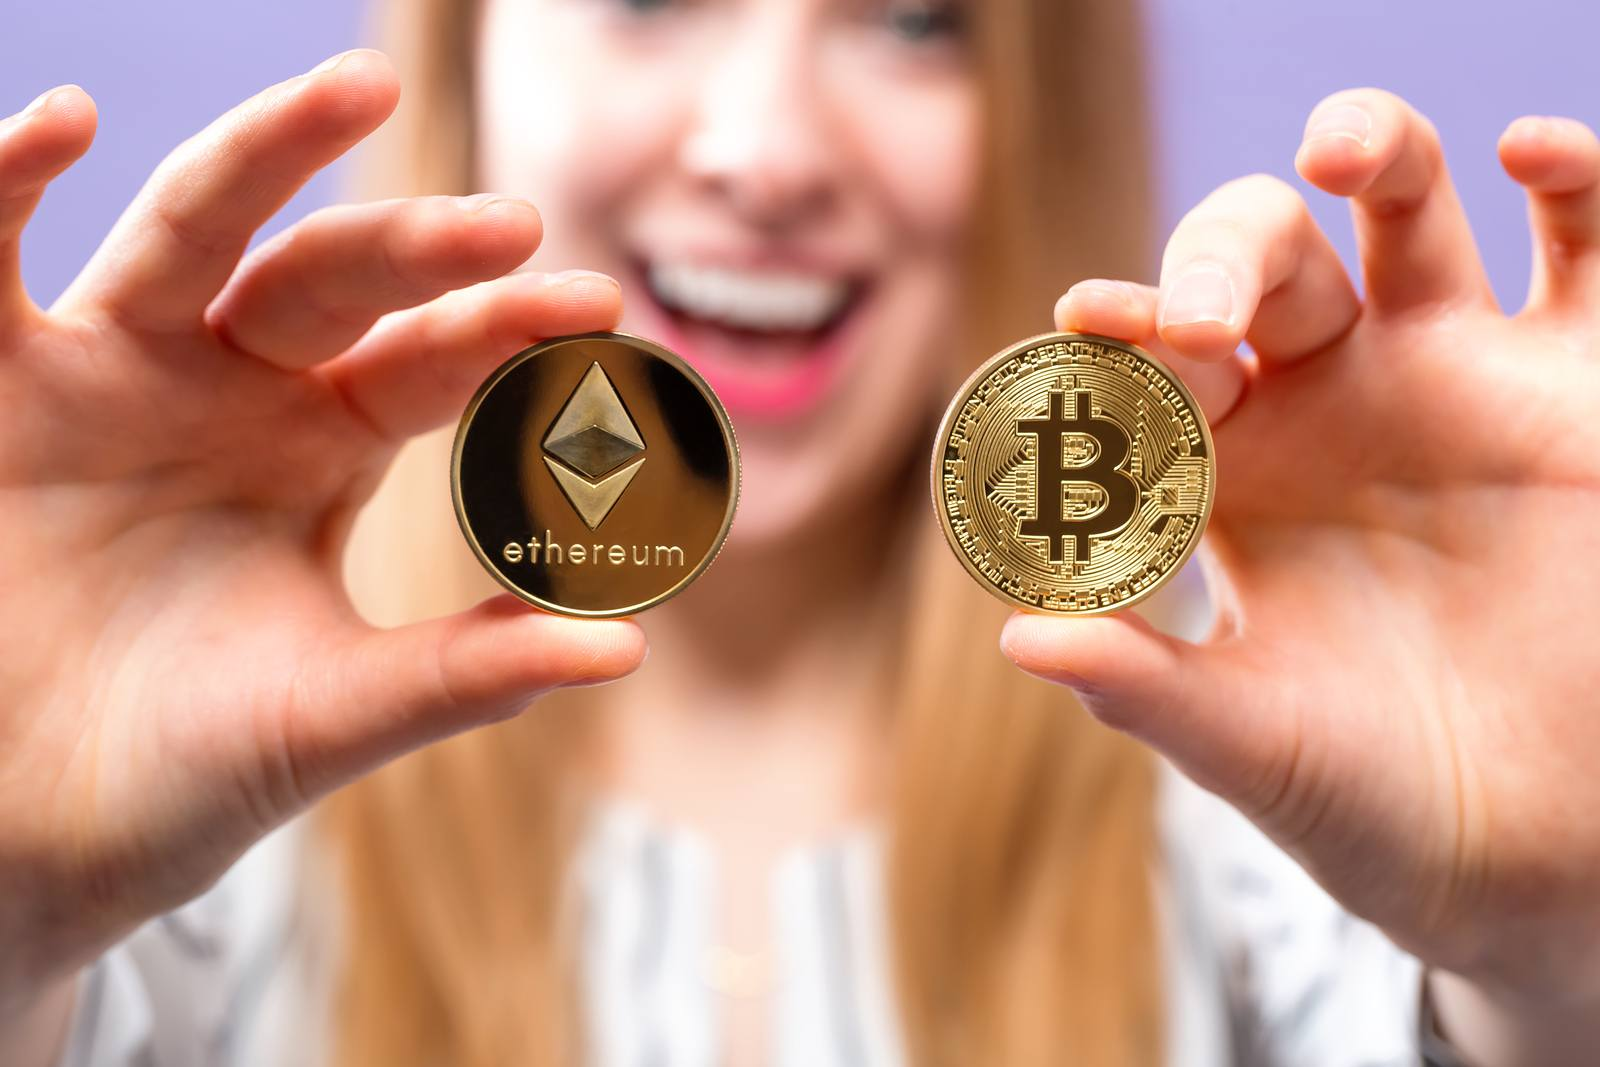 Ether is more popular than Bitcoin in Singapore, new study finds